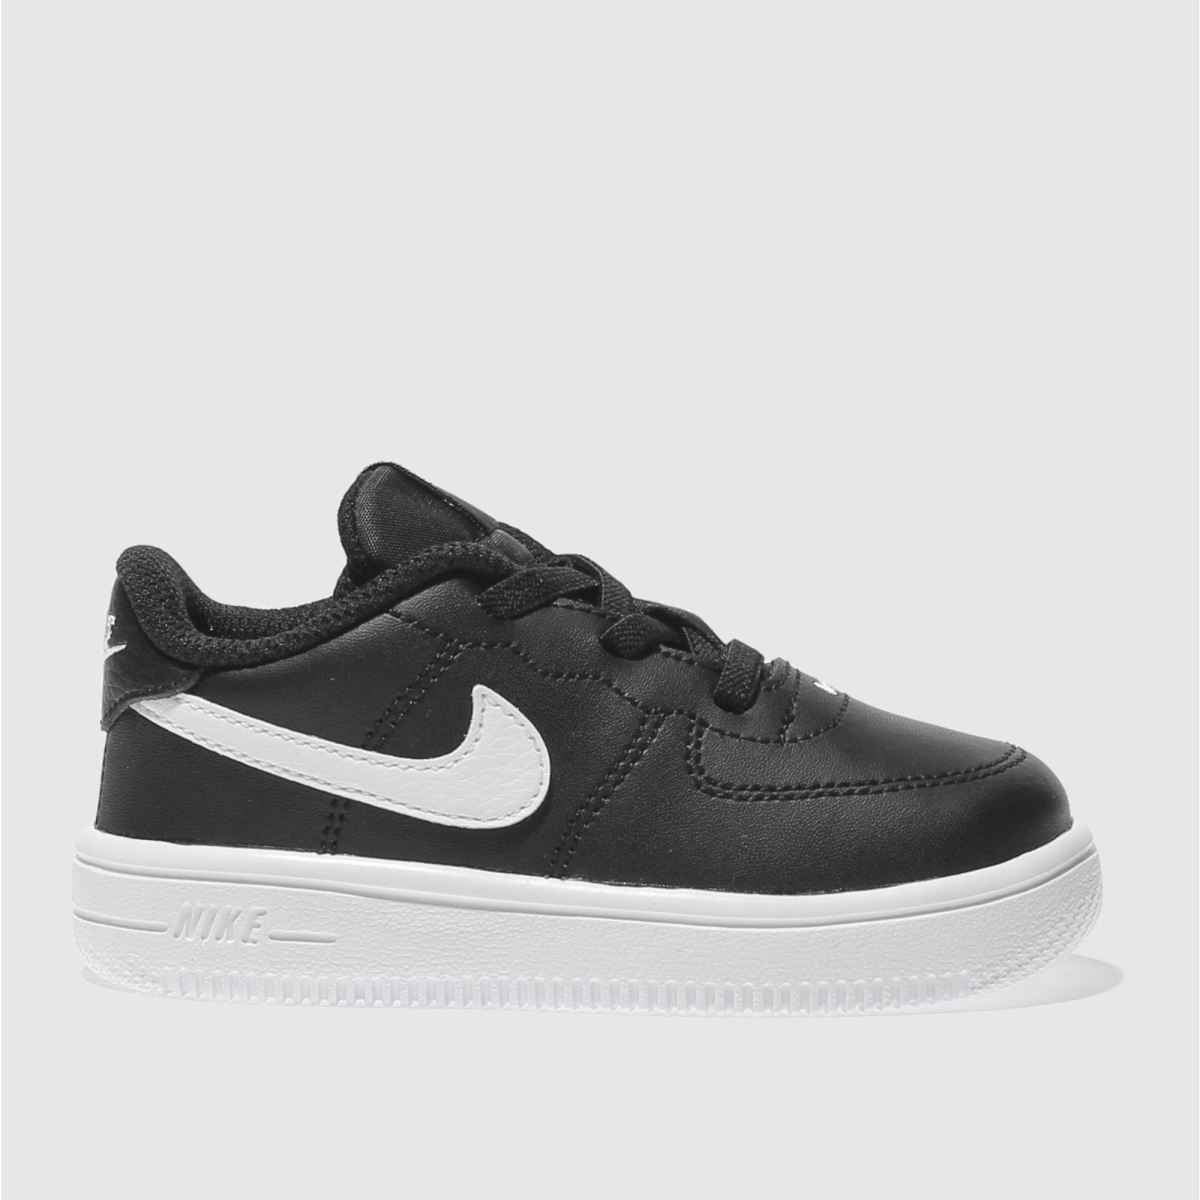 nike black & white force 1 18 bt Toddler Trainers